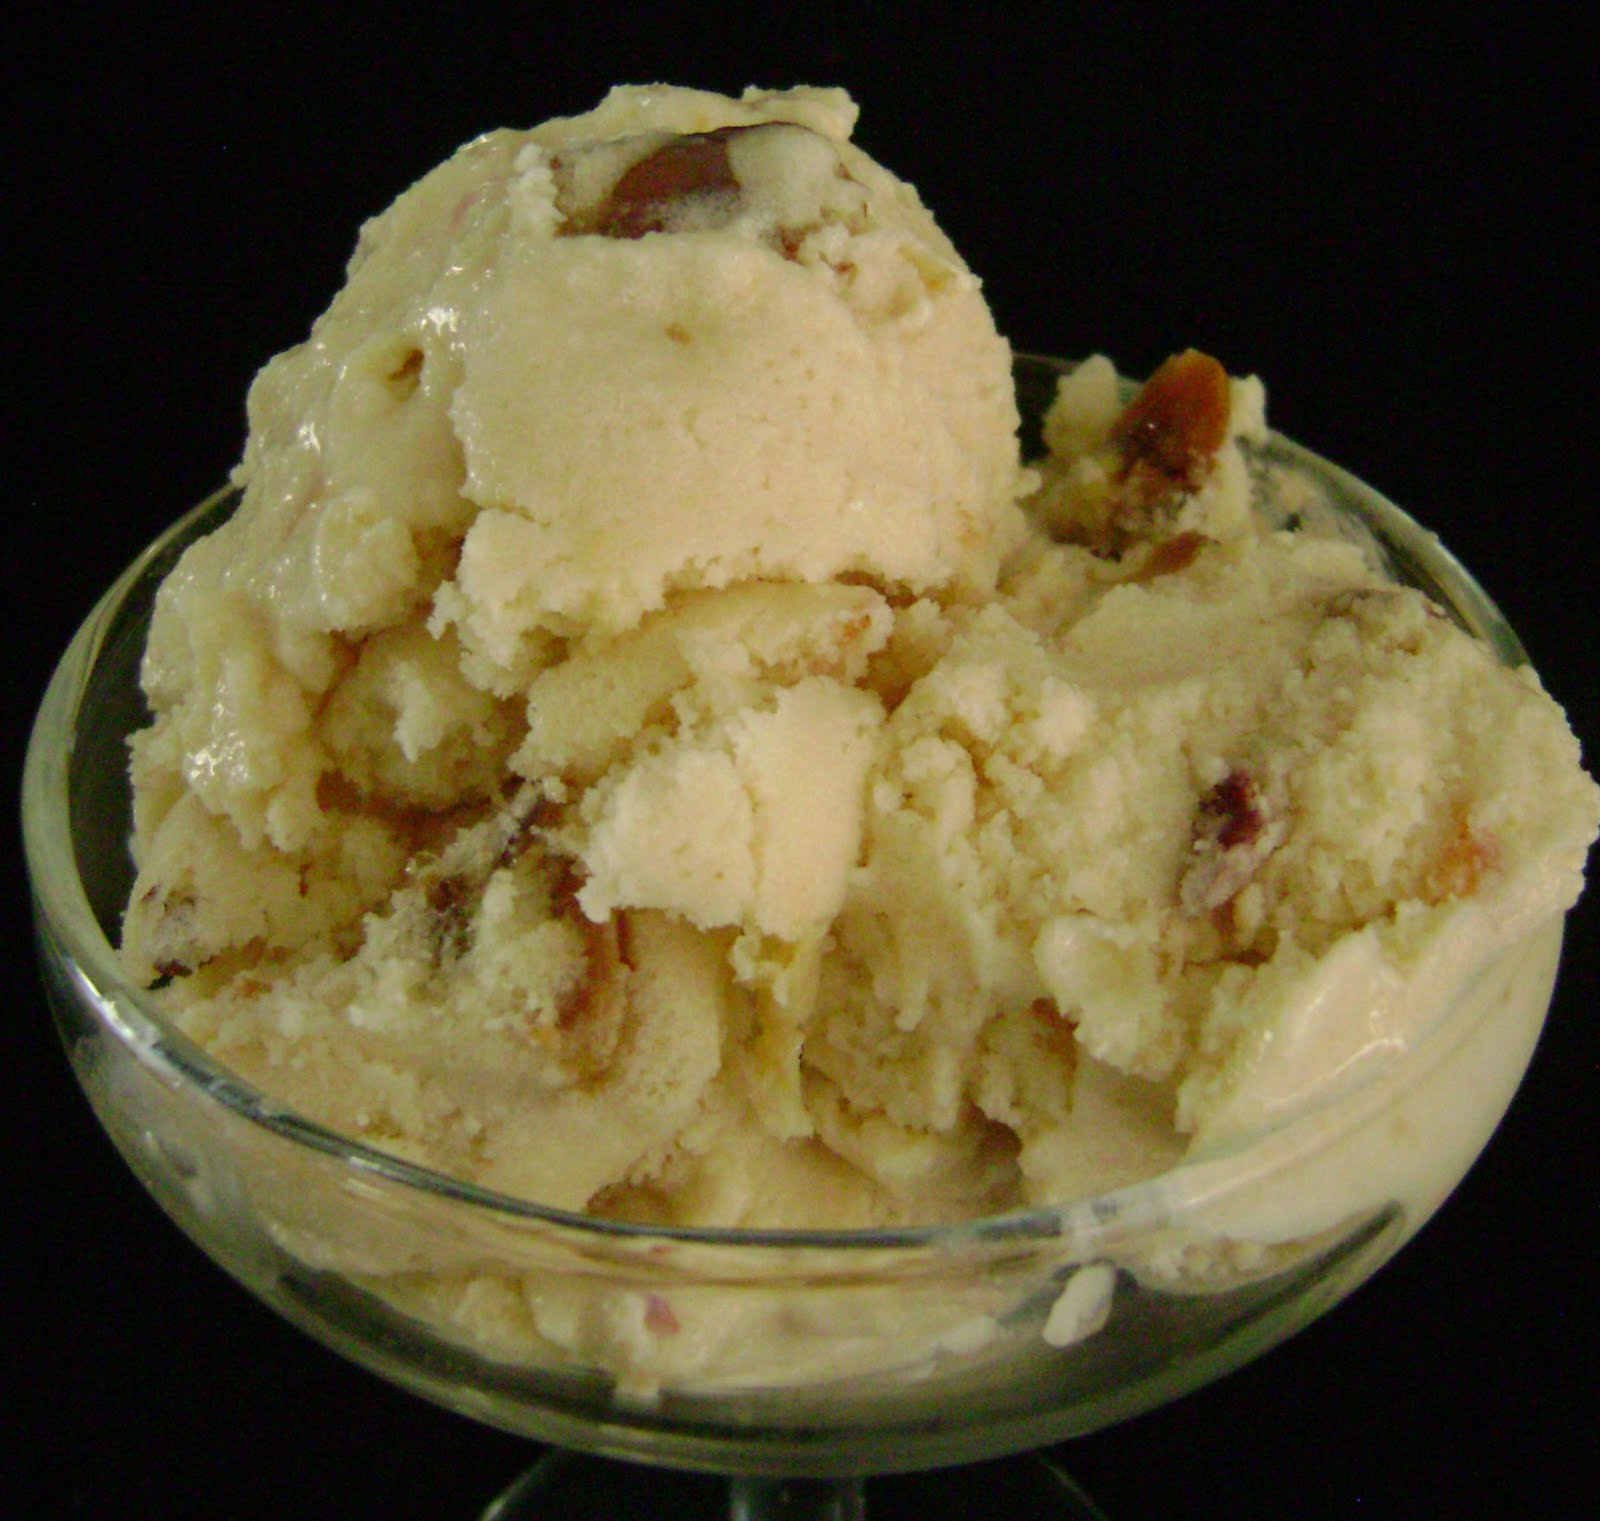 Jo and Sue: Vegan Peach Ice Cream with Caramelized Almonds